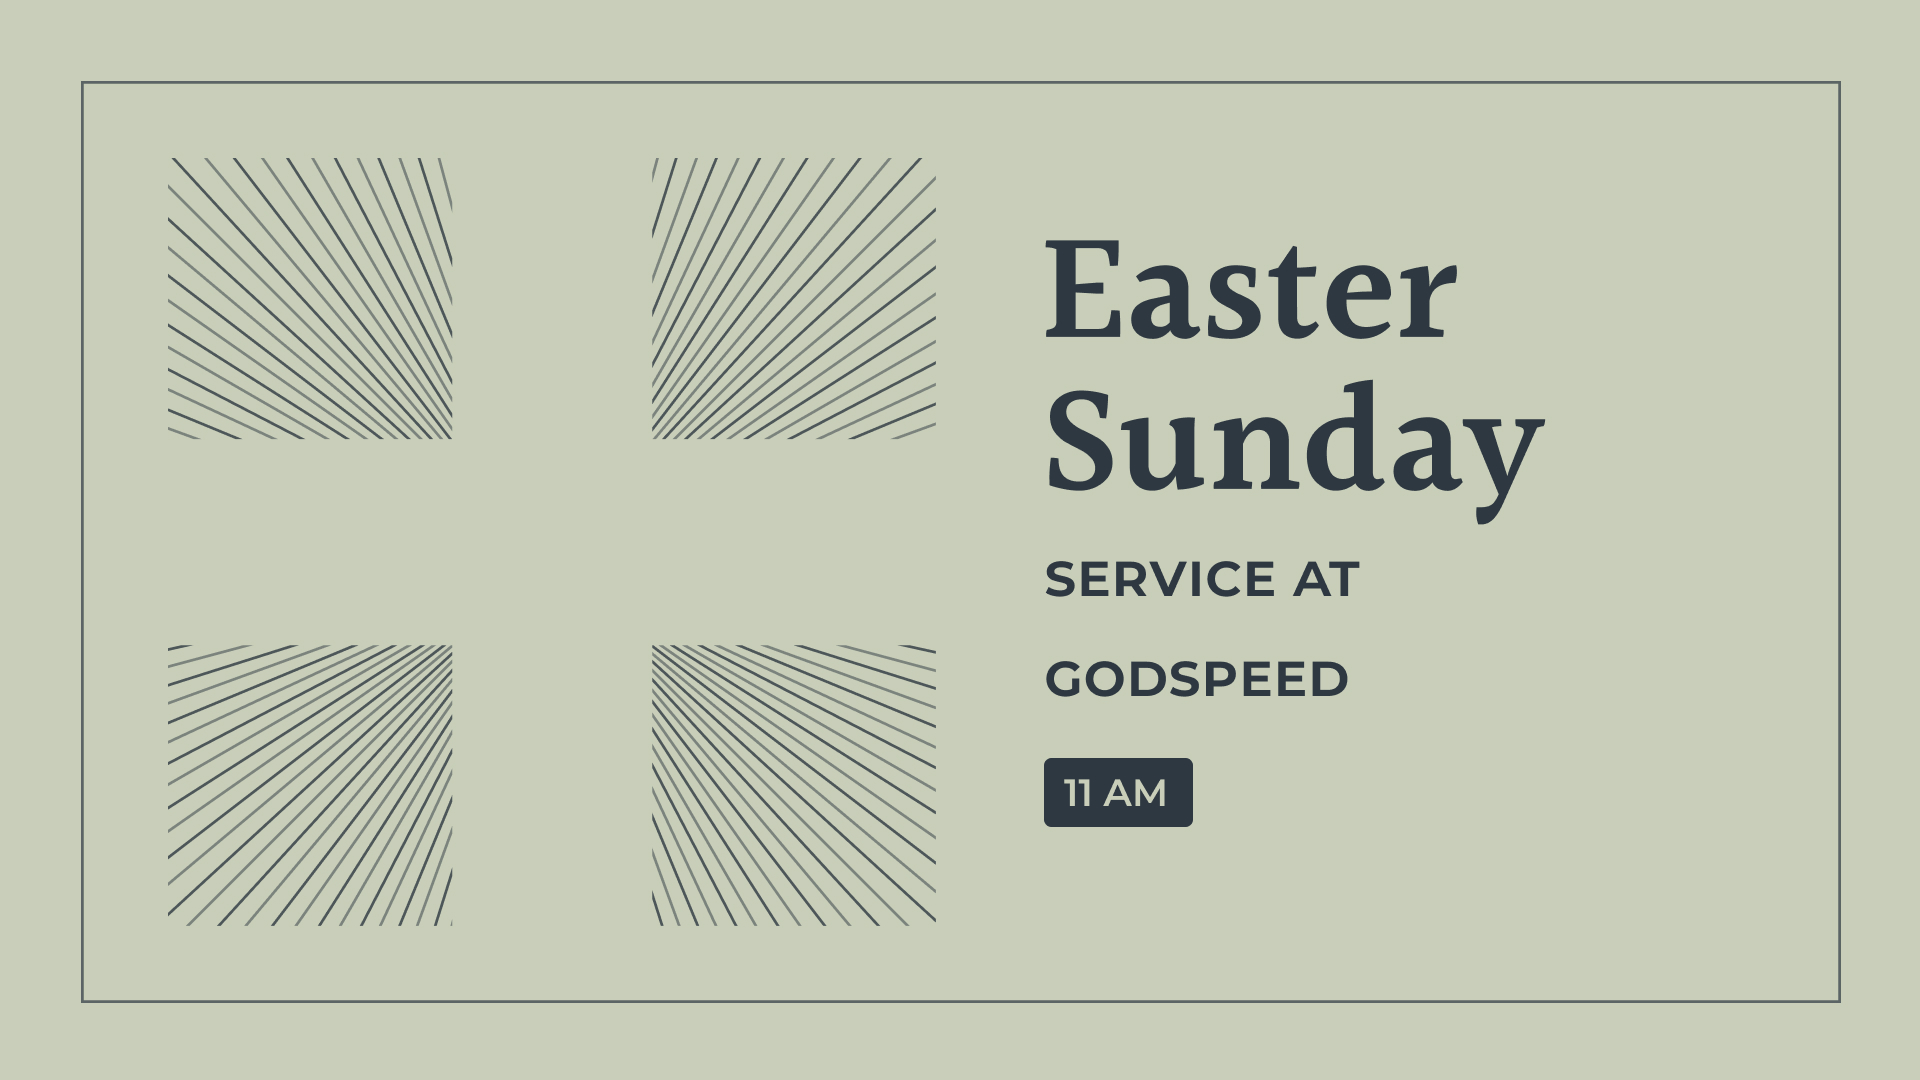 Easter Sunday FINAL w date image